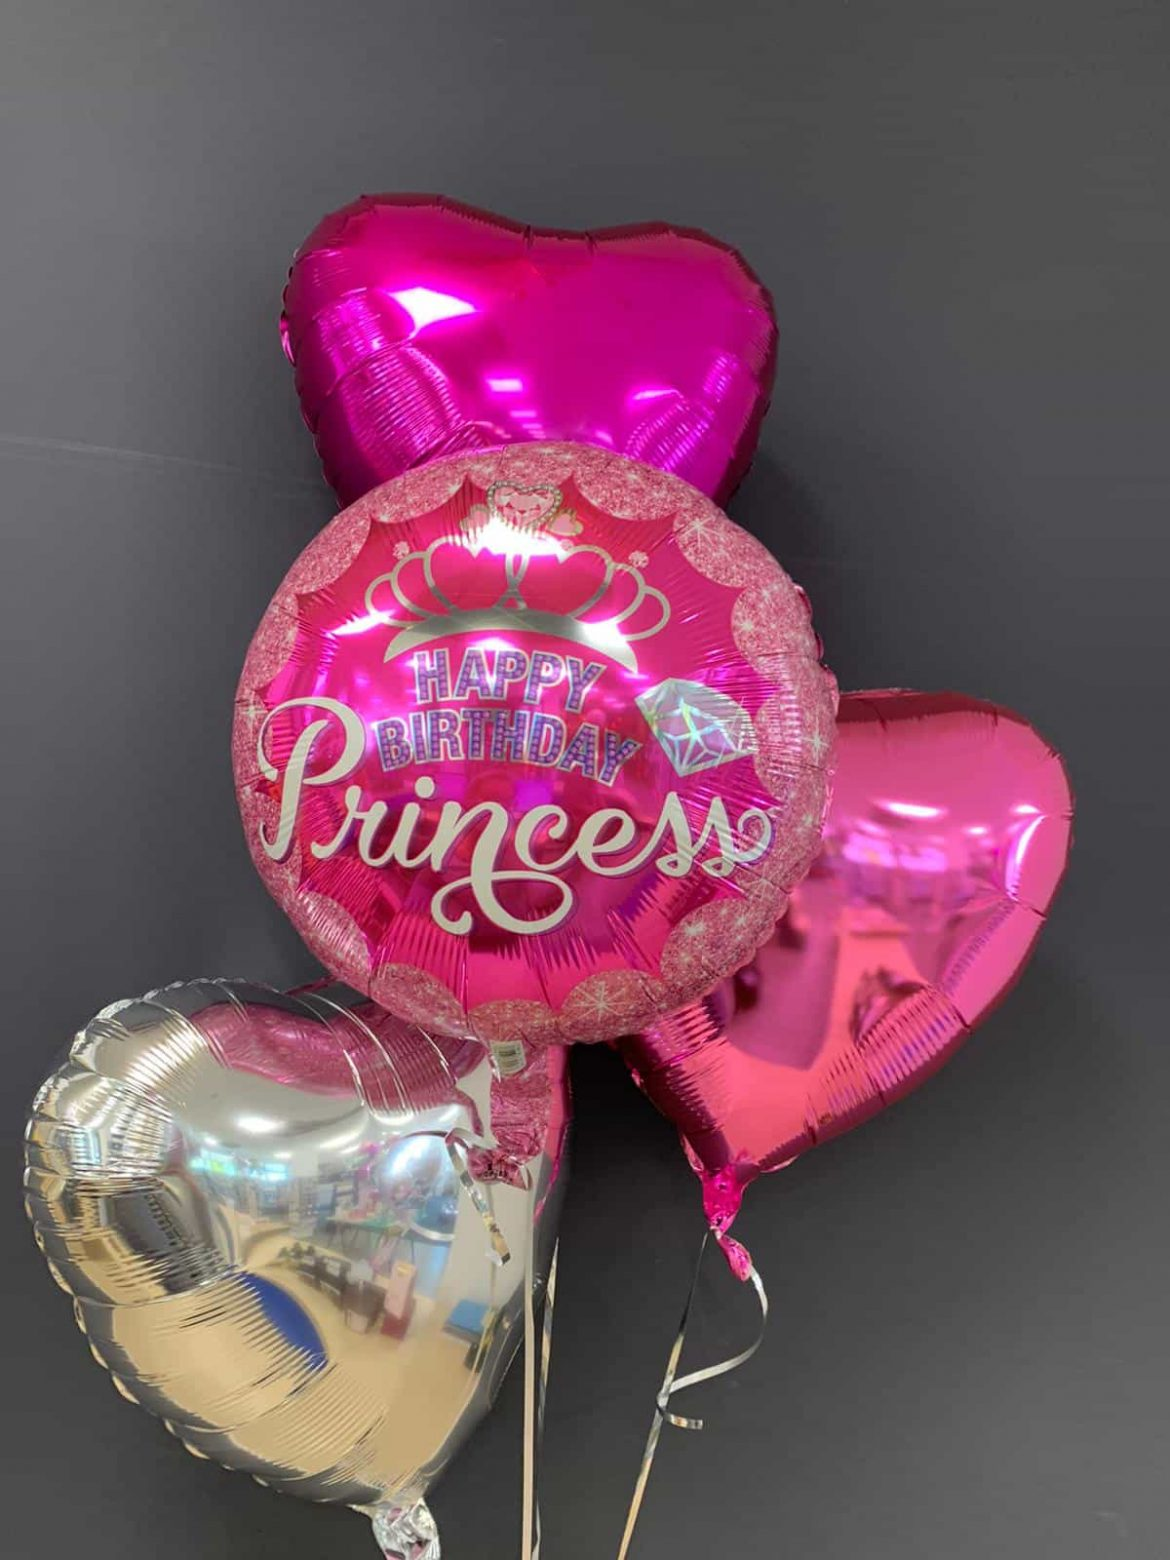 Birthday Princess € 5,50<br />Dekoballon € 4,50 1